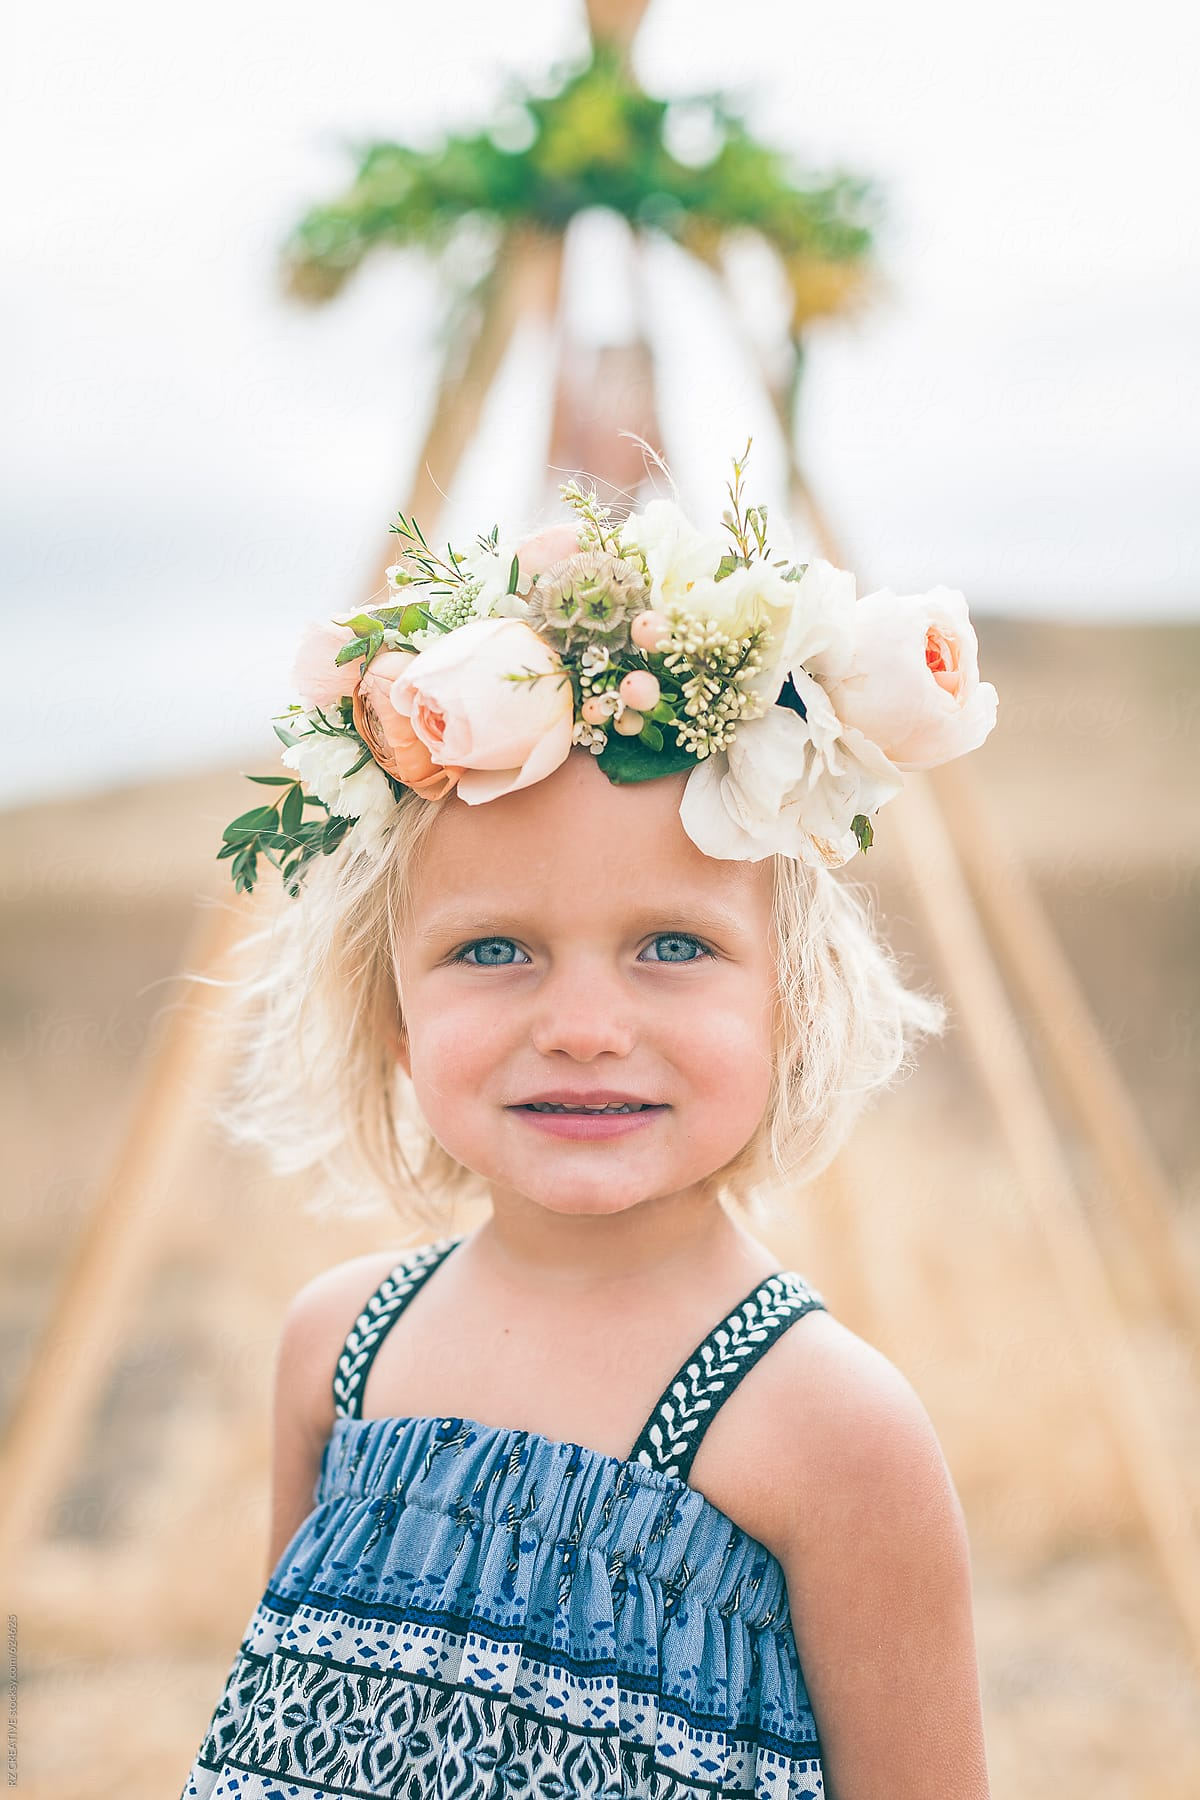 Portrait Of Young Girl With Flower Crown Stocksy United